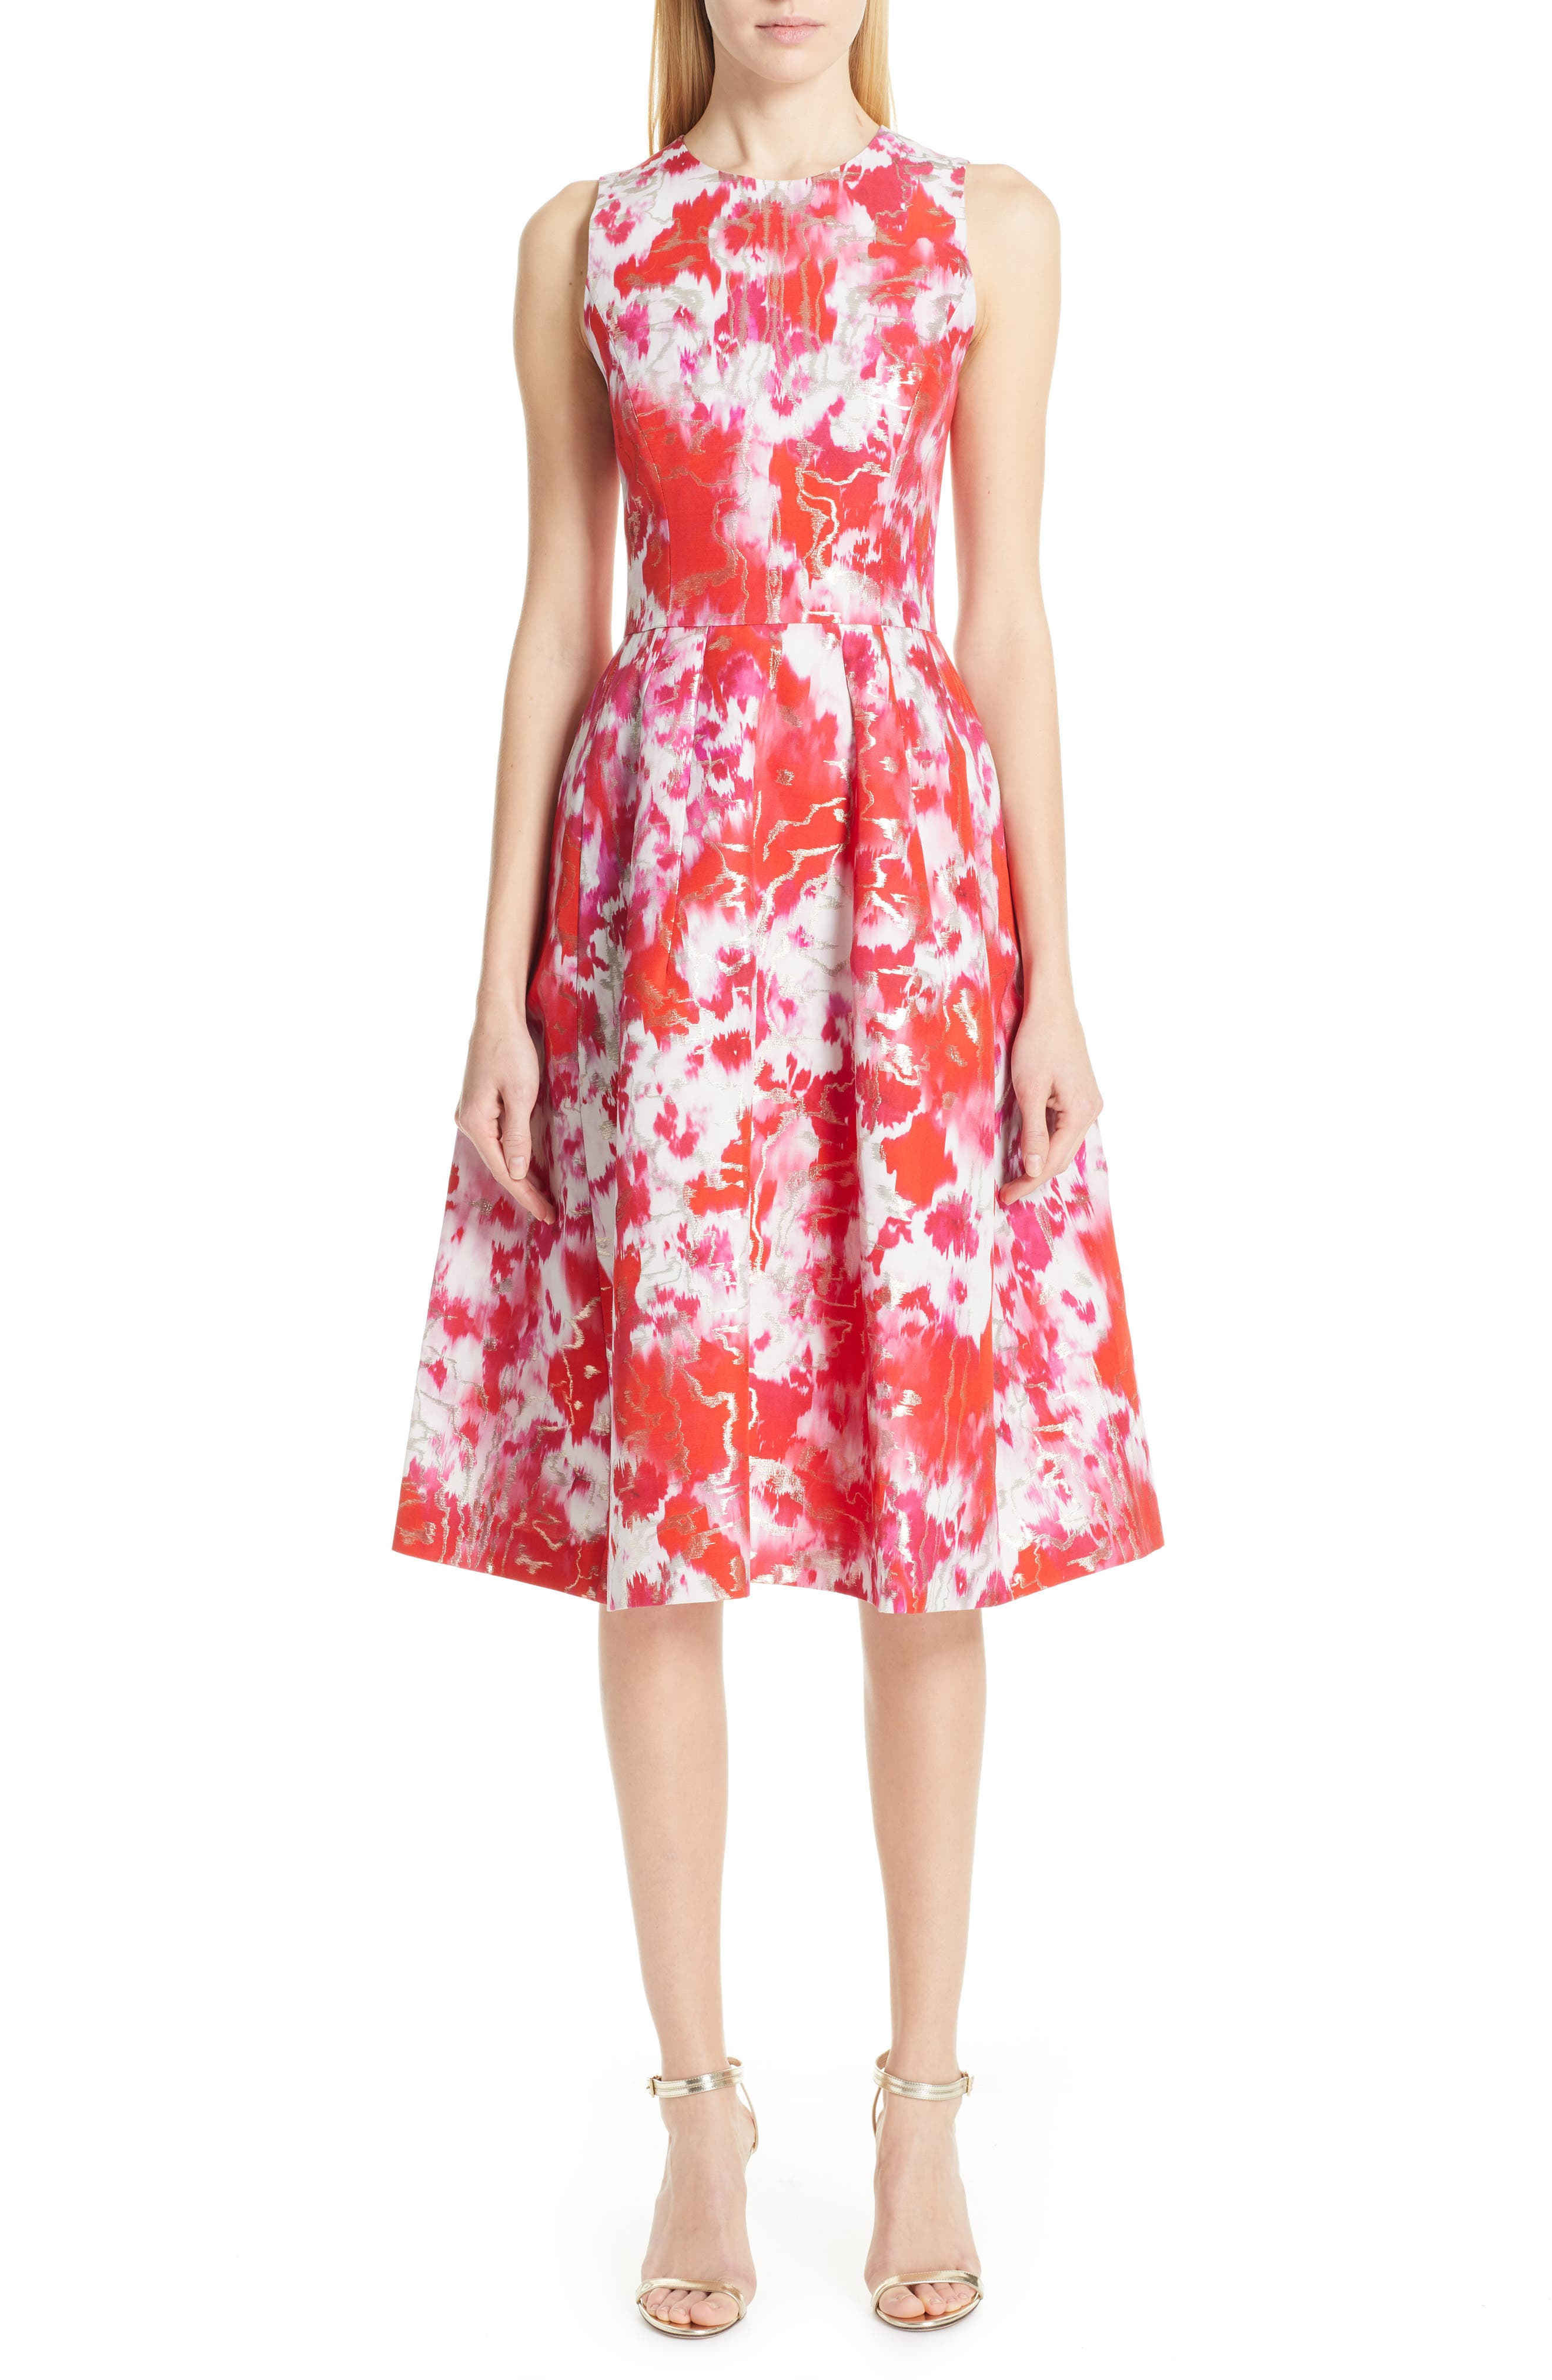 Carolina Herrera Floral Midi Cocktail Dress, Red